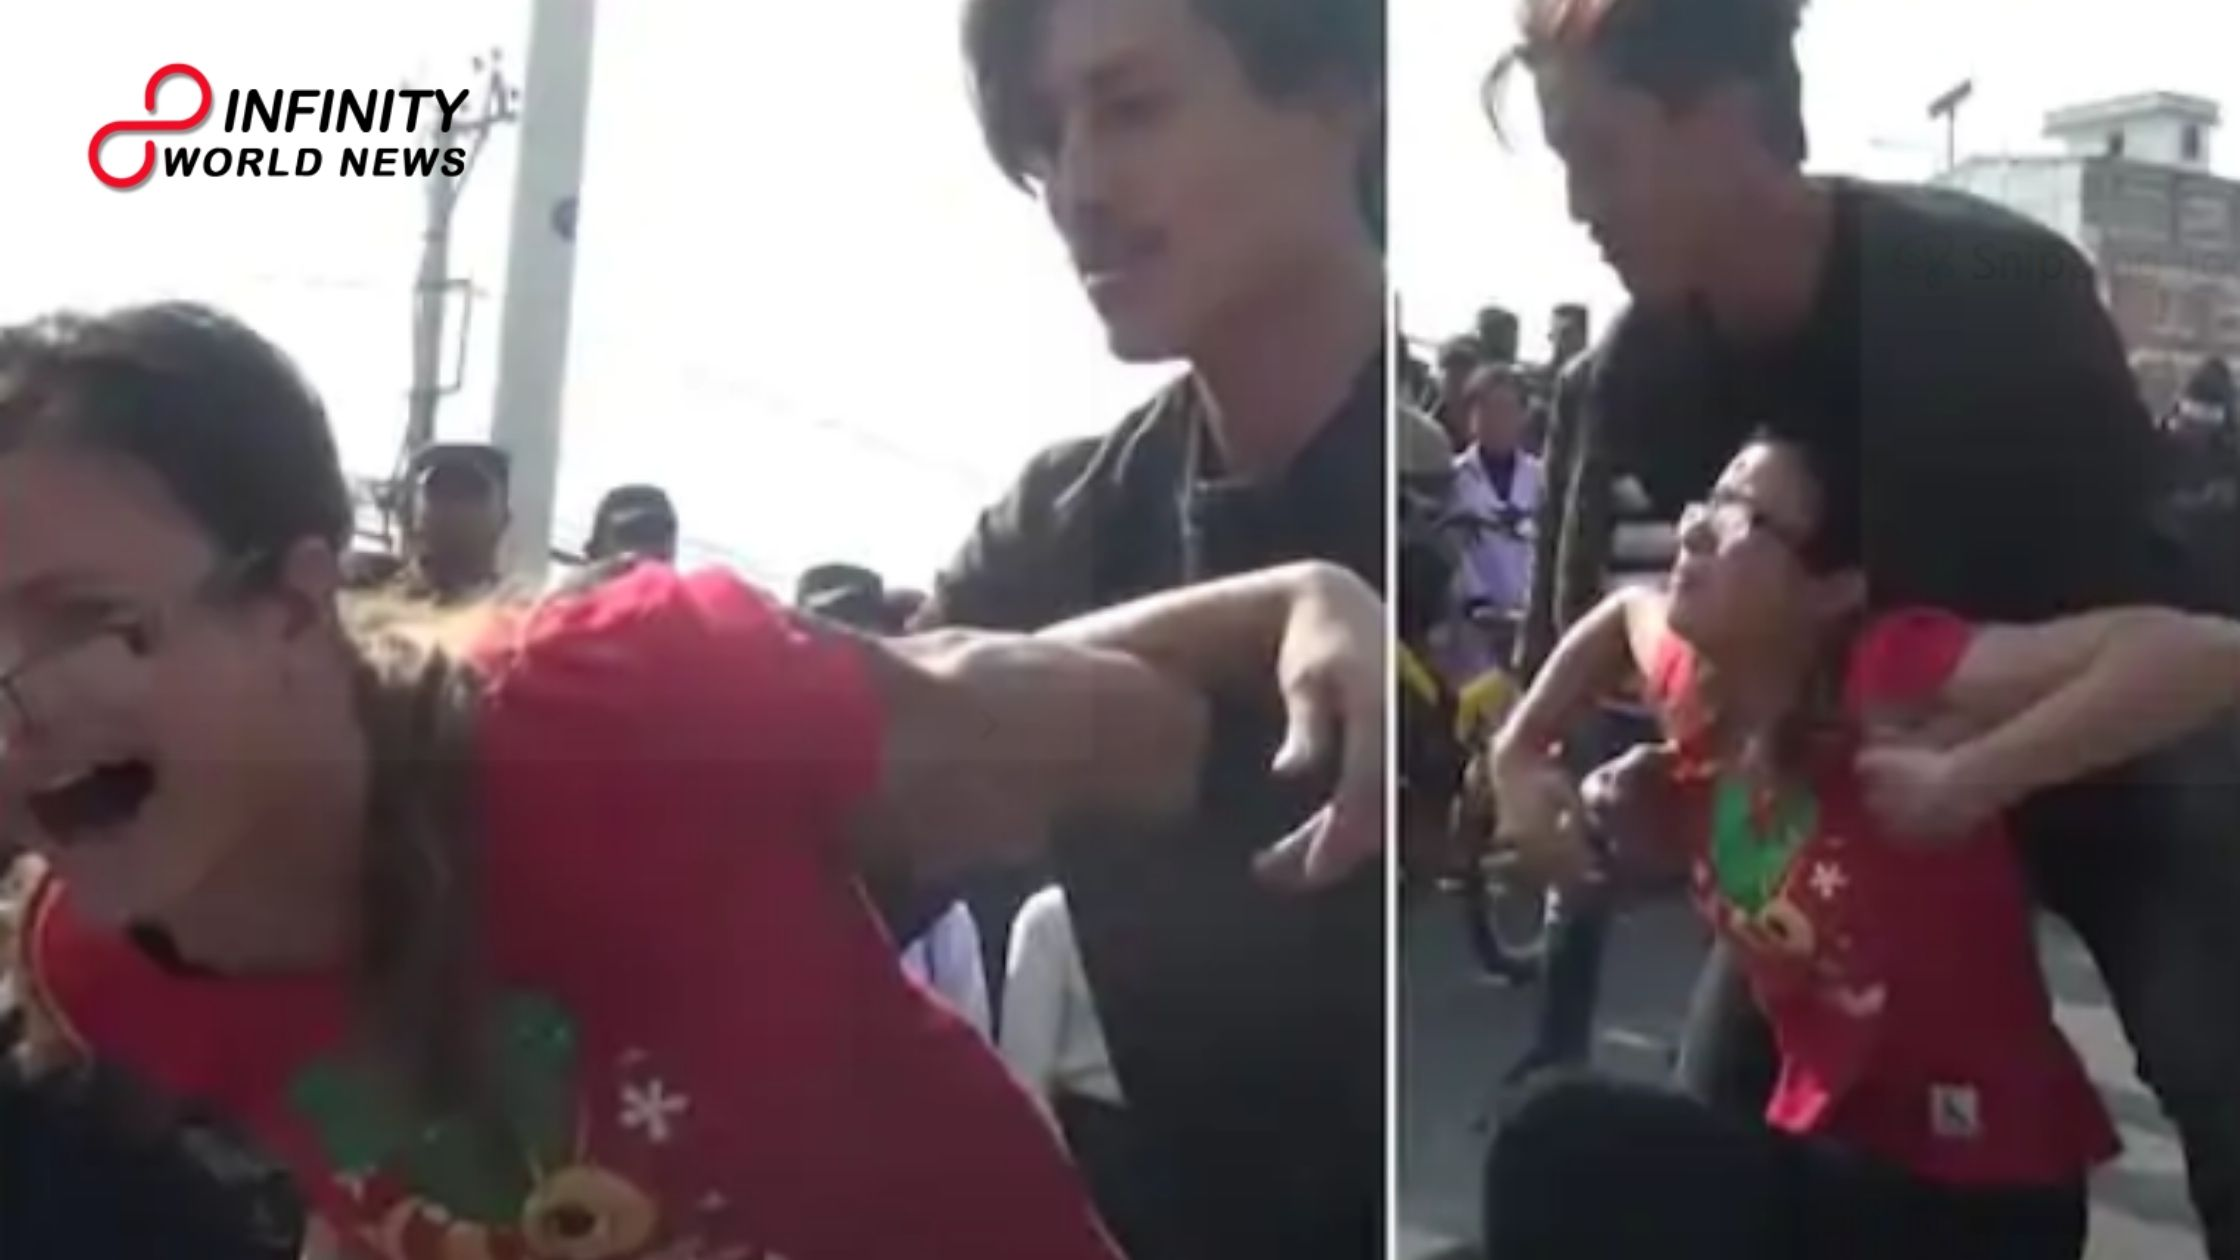 Viral Video Depicting Man Openly Attacking a Woman in Nepal as Cops Watch is Bogus